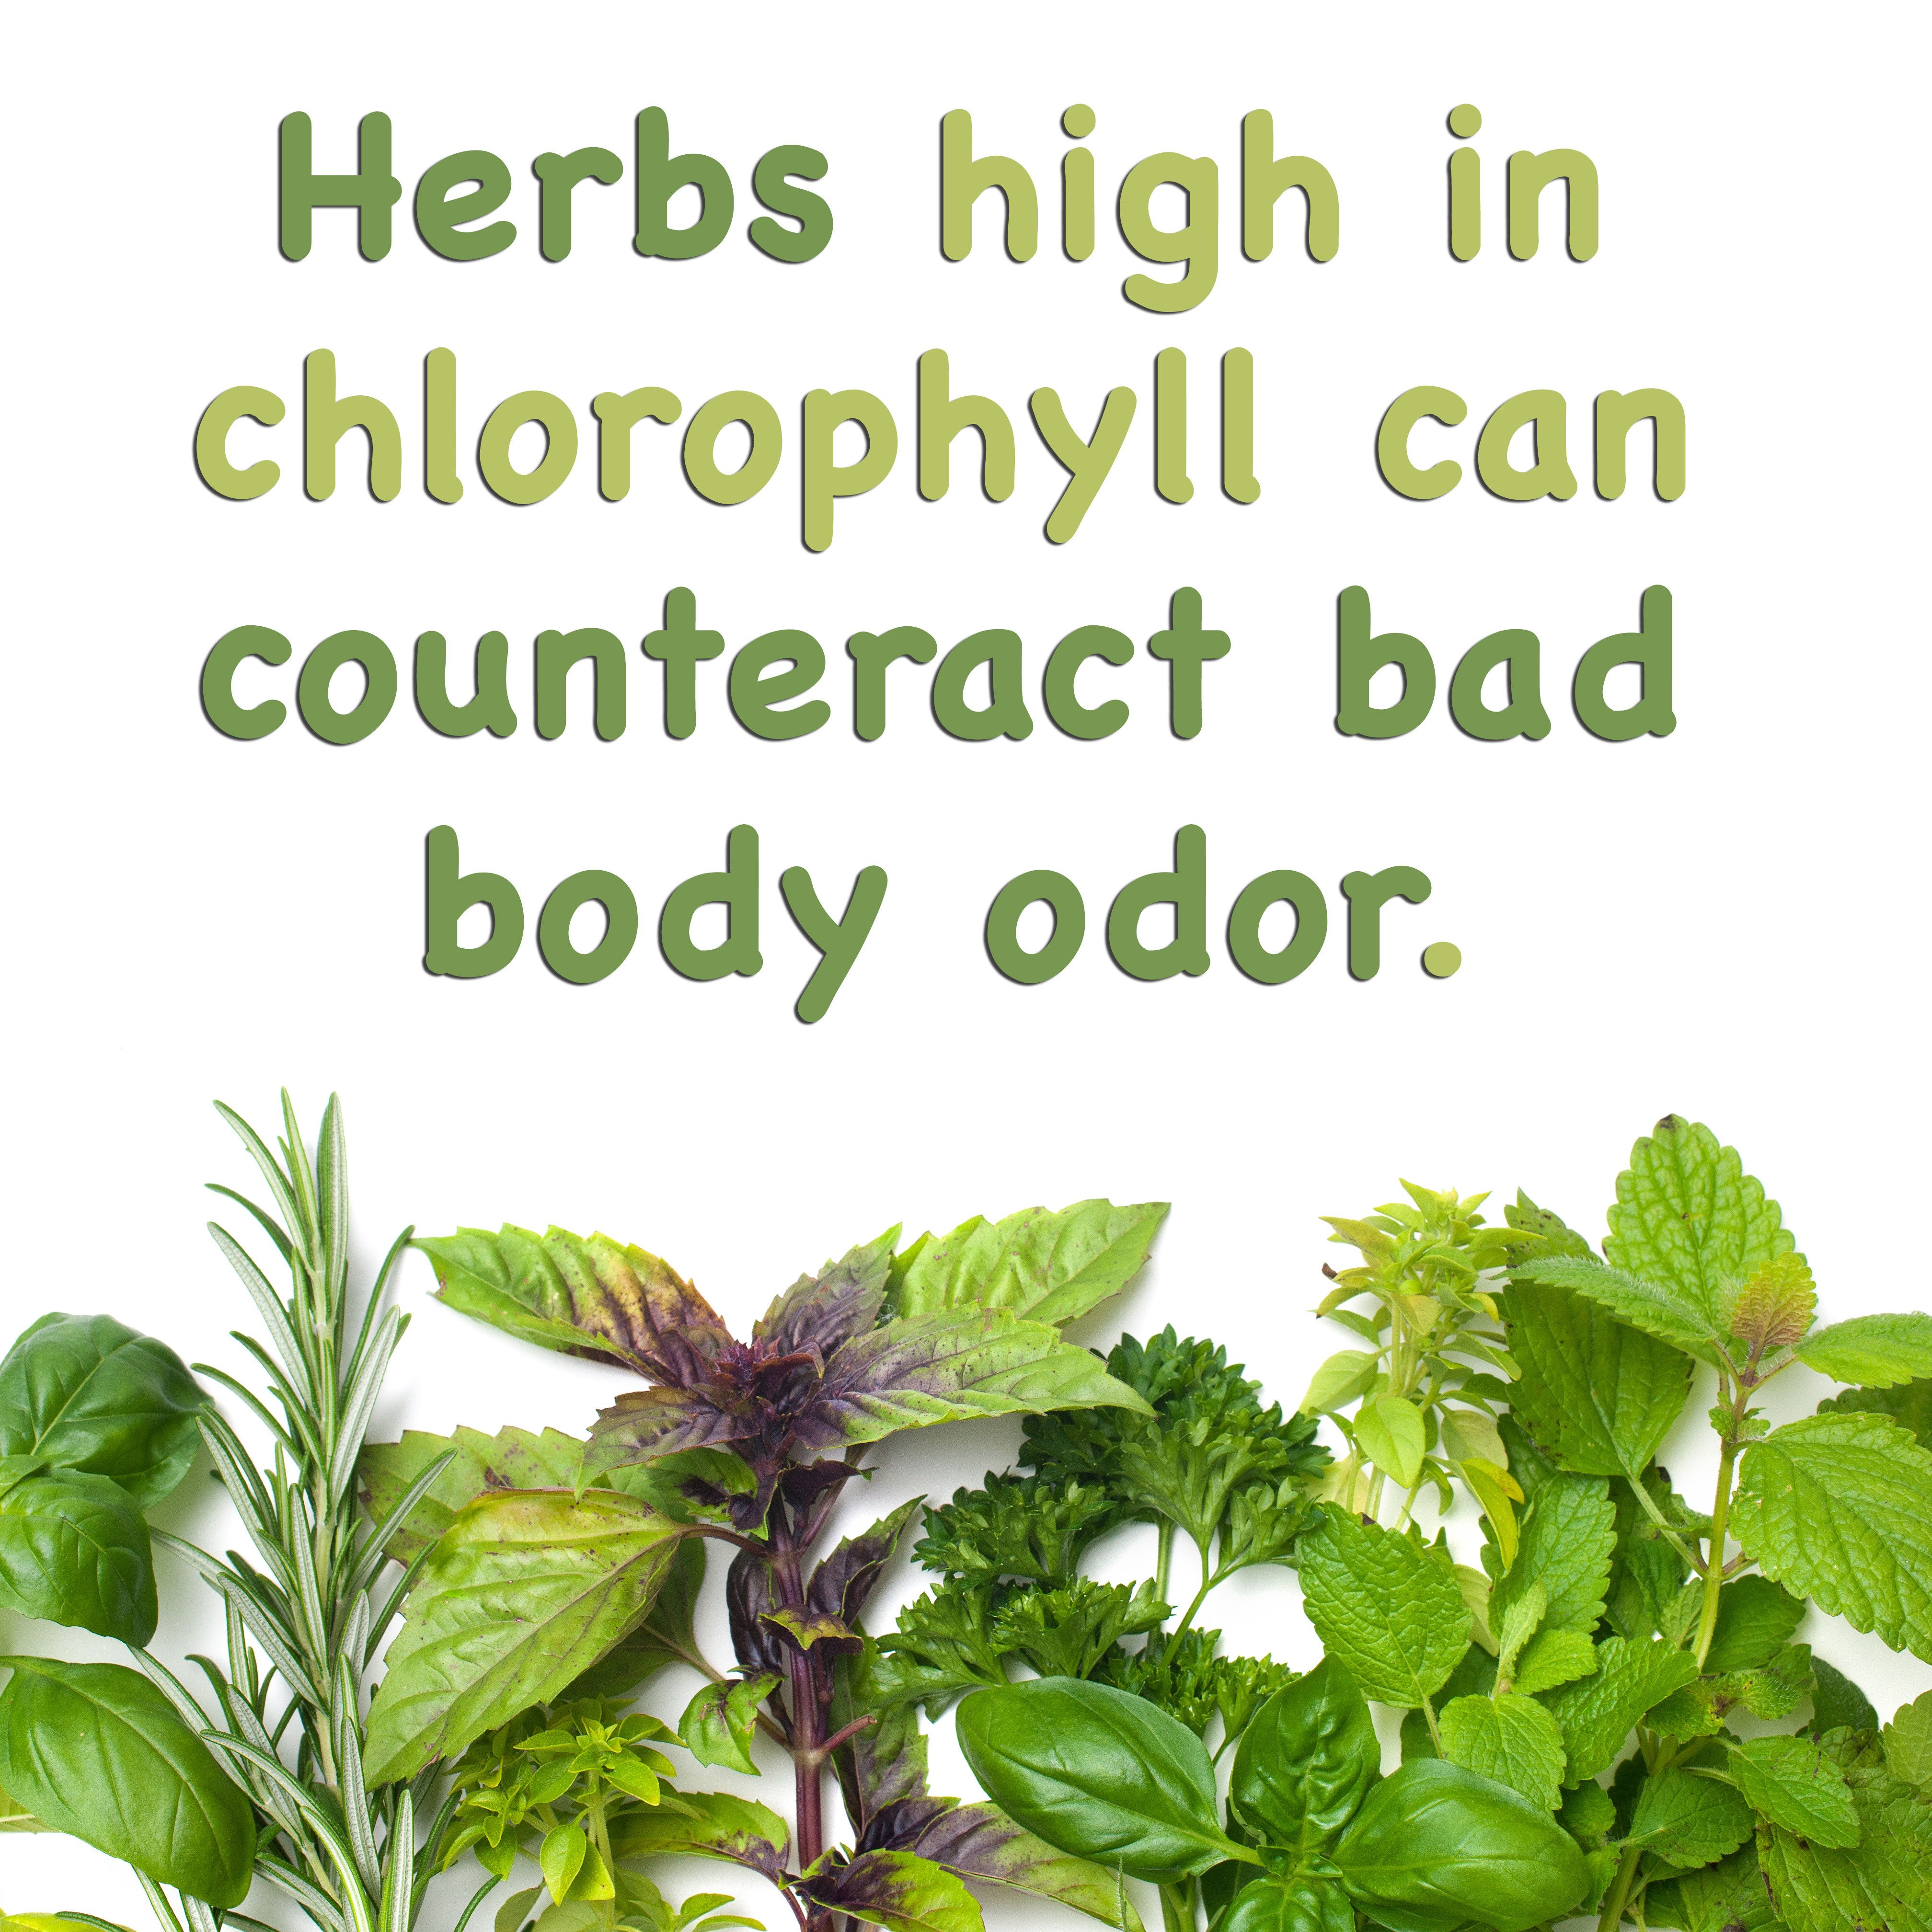 Herbs high in chlorophyll, such as parsley, cilantro, and